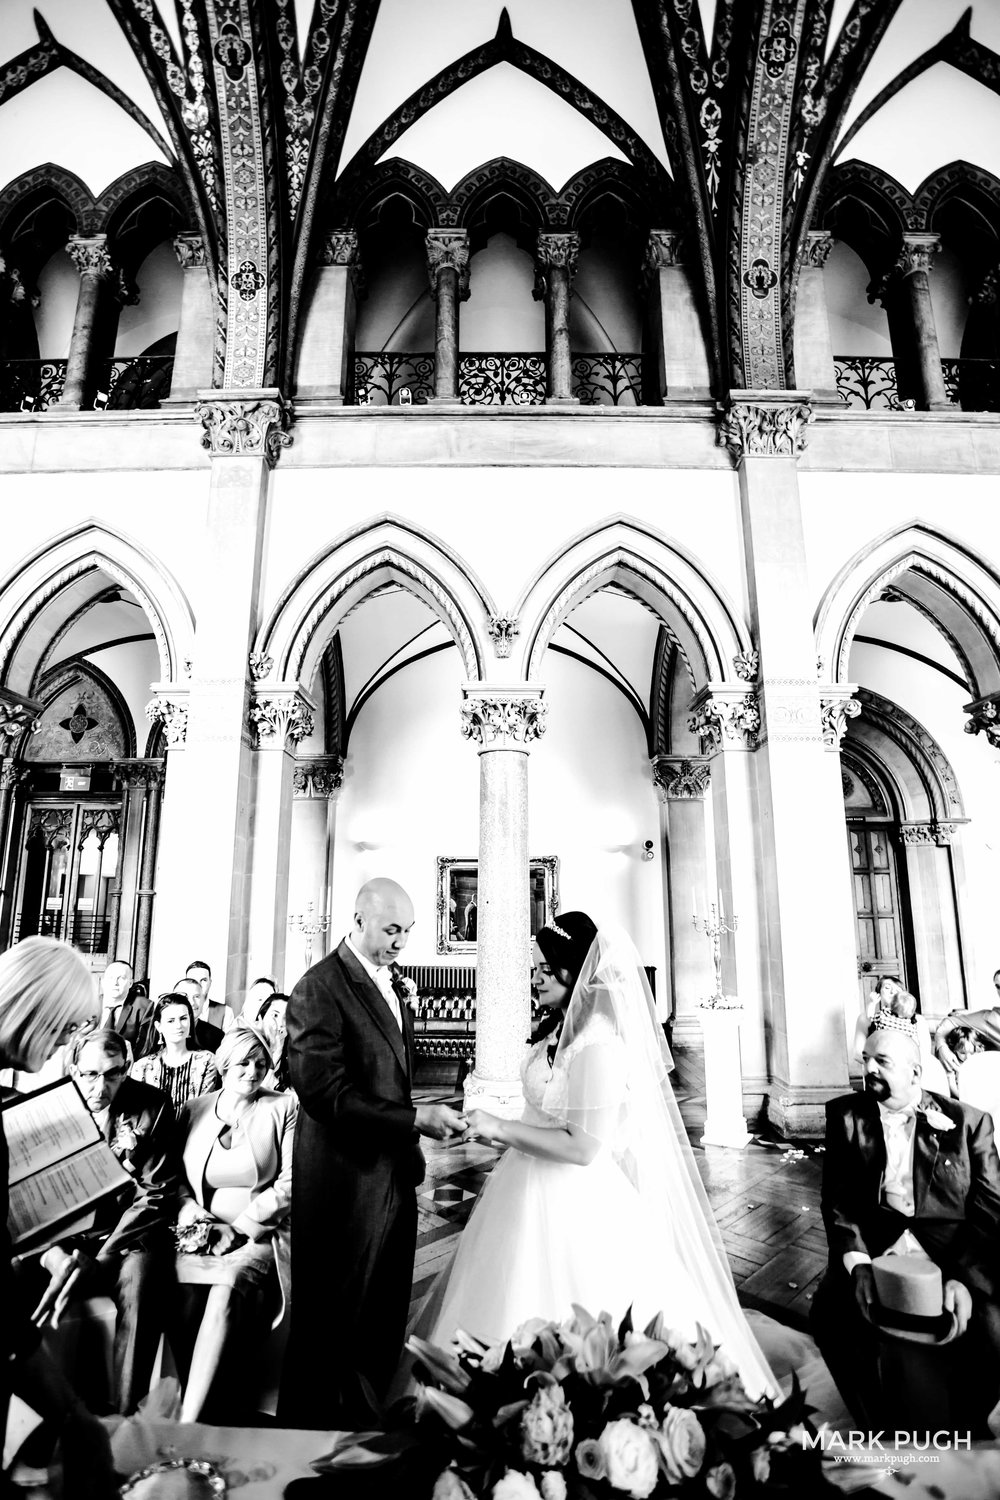 046 - Lauren and Tim - fineART wedding photography at Kelham Hall Newark UK by www.markpugh.com Mark Pugh of www.mpmedia.co.uk_.JPG